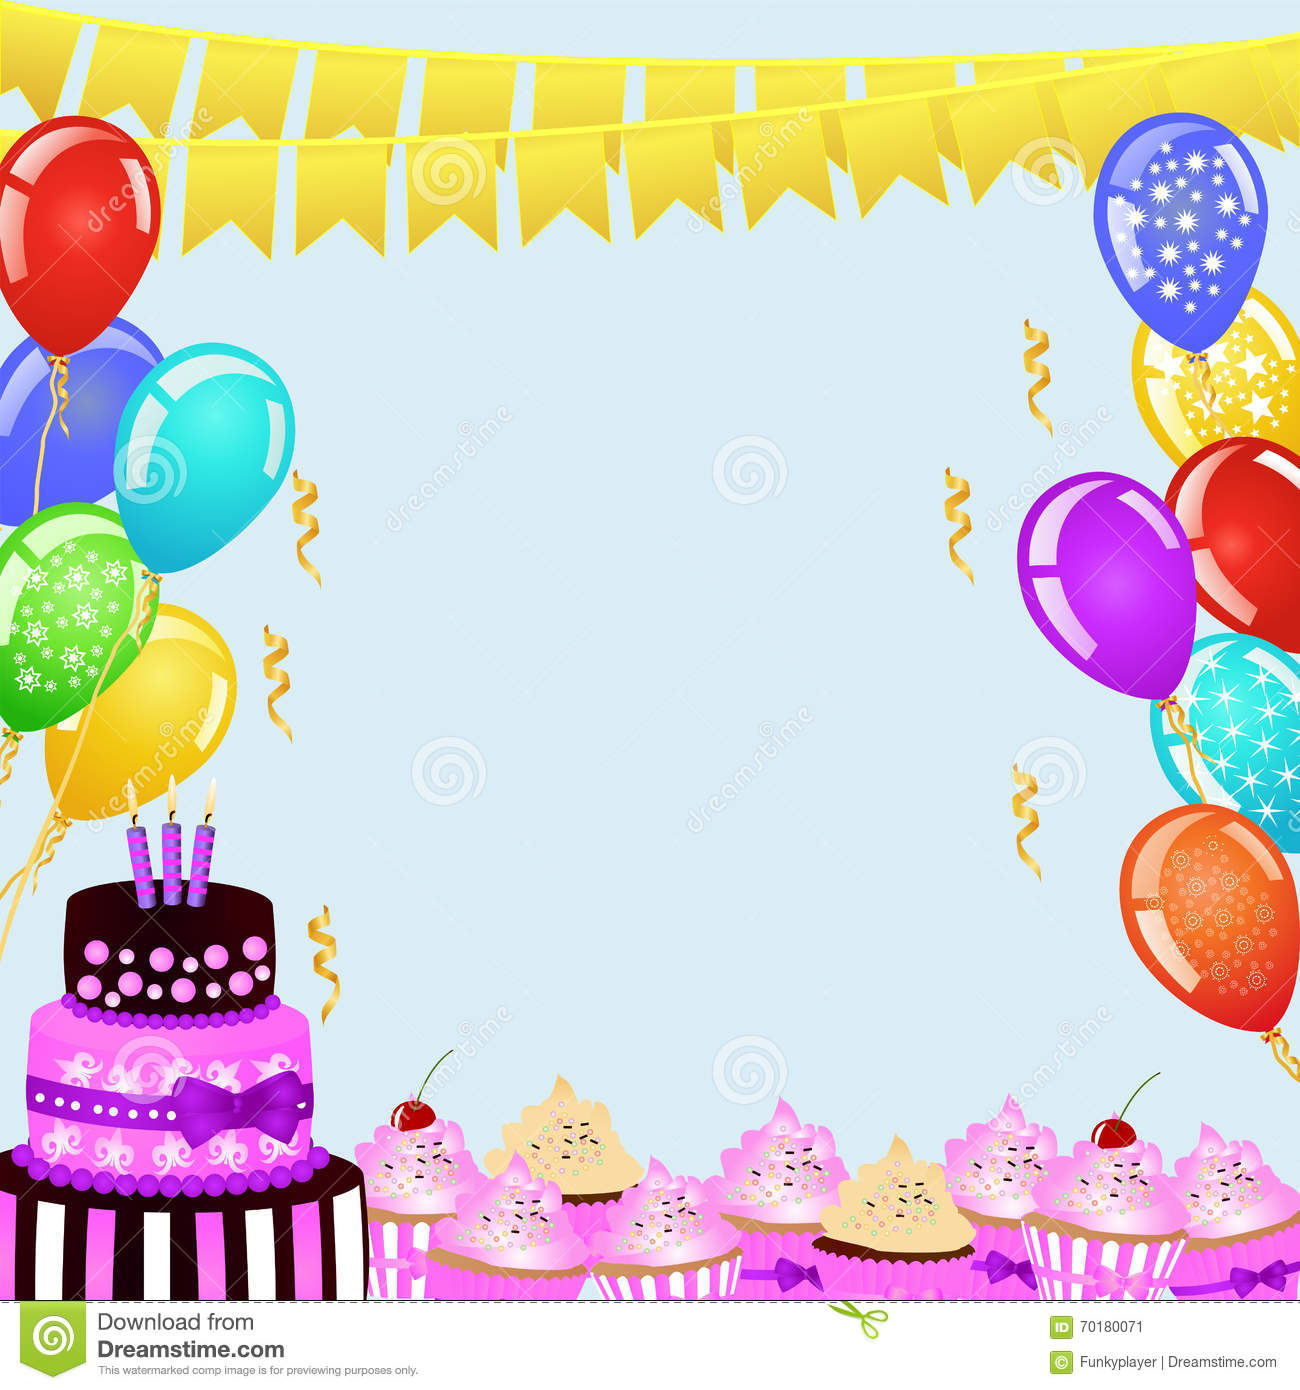 free birthday page borders ; birthday-party-background-bunting-flags-balloons-birthday-cake-cupcakes-border-your-design-festive-frame-70180071